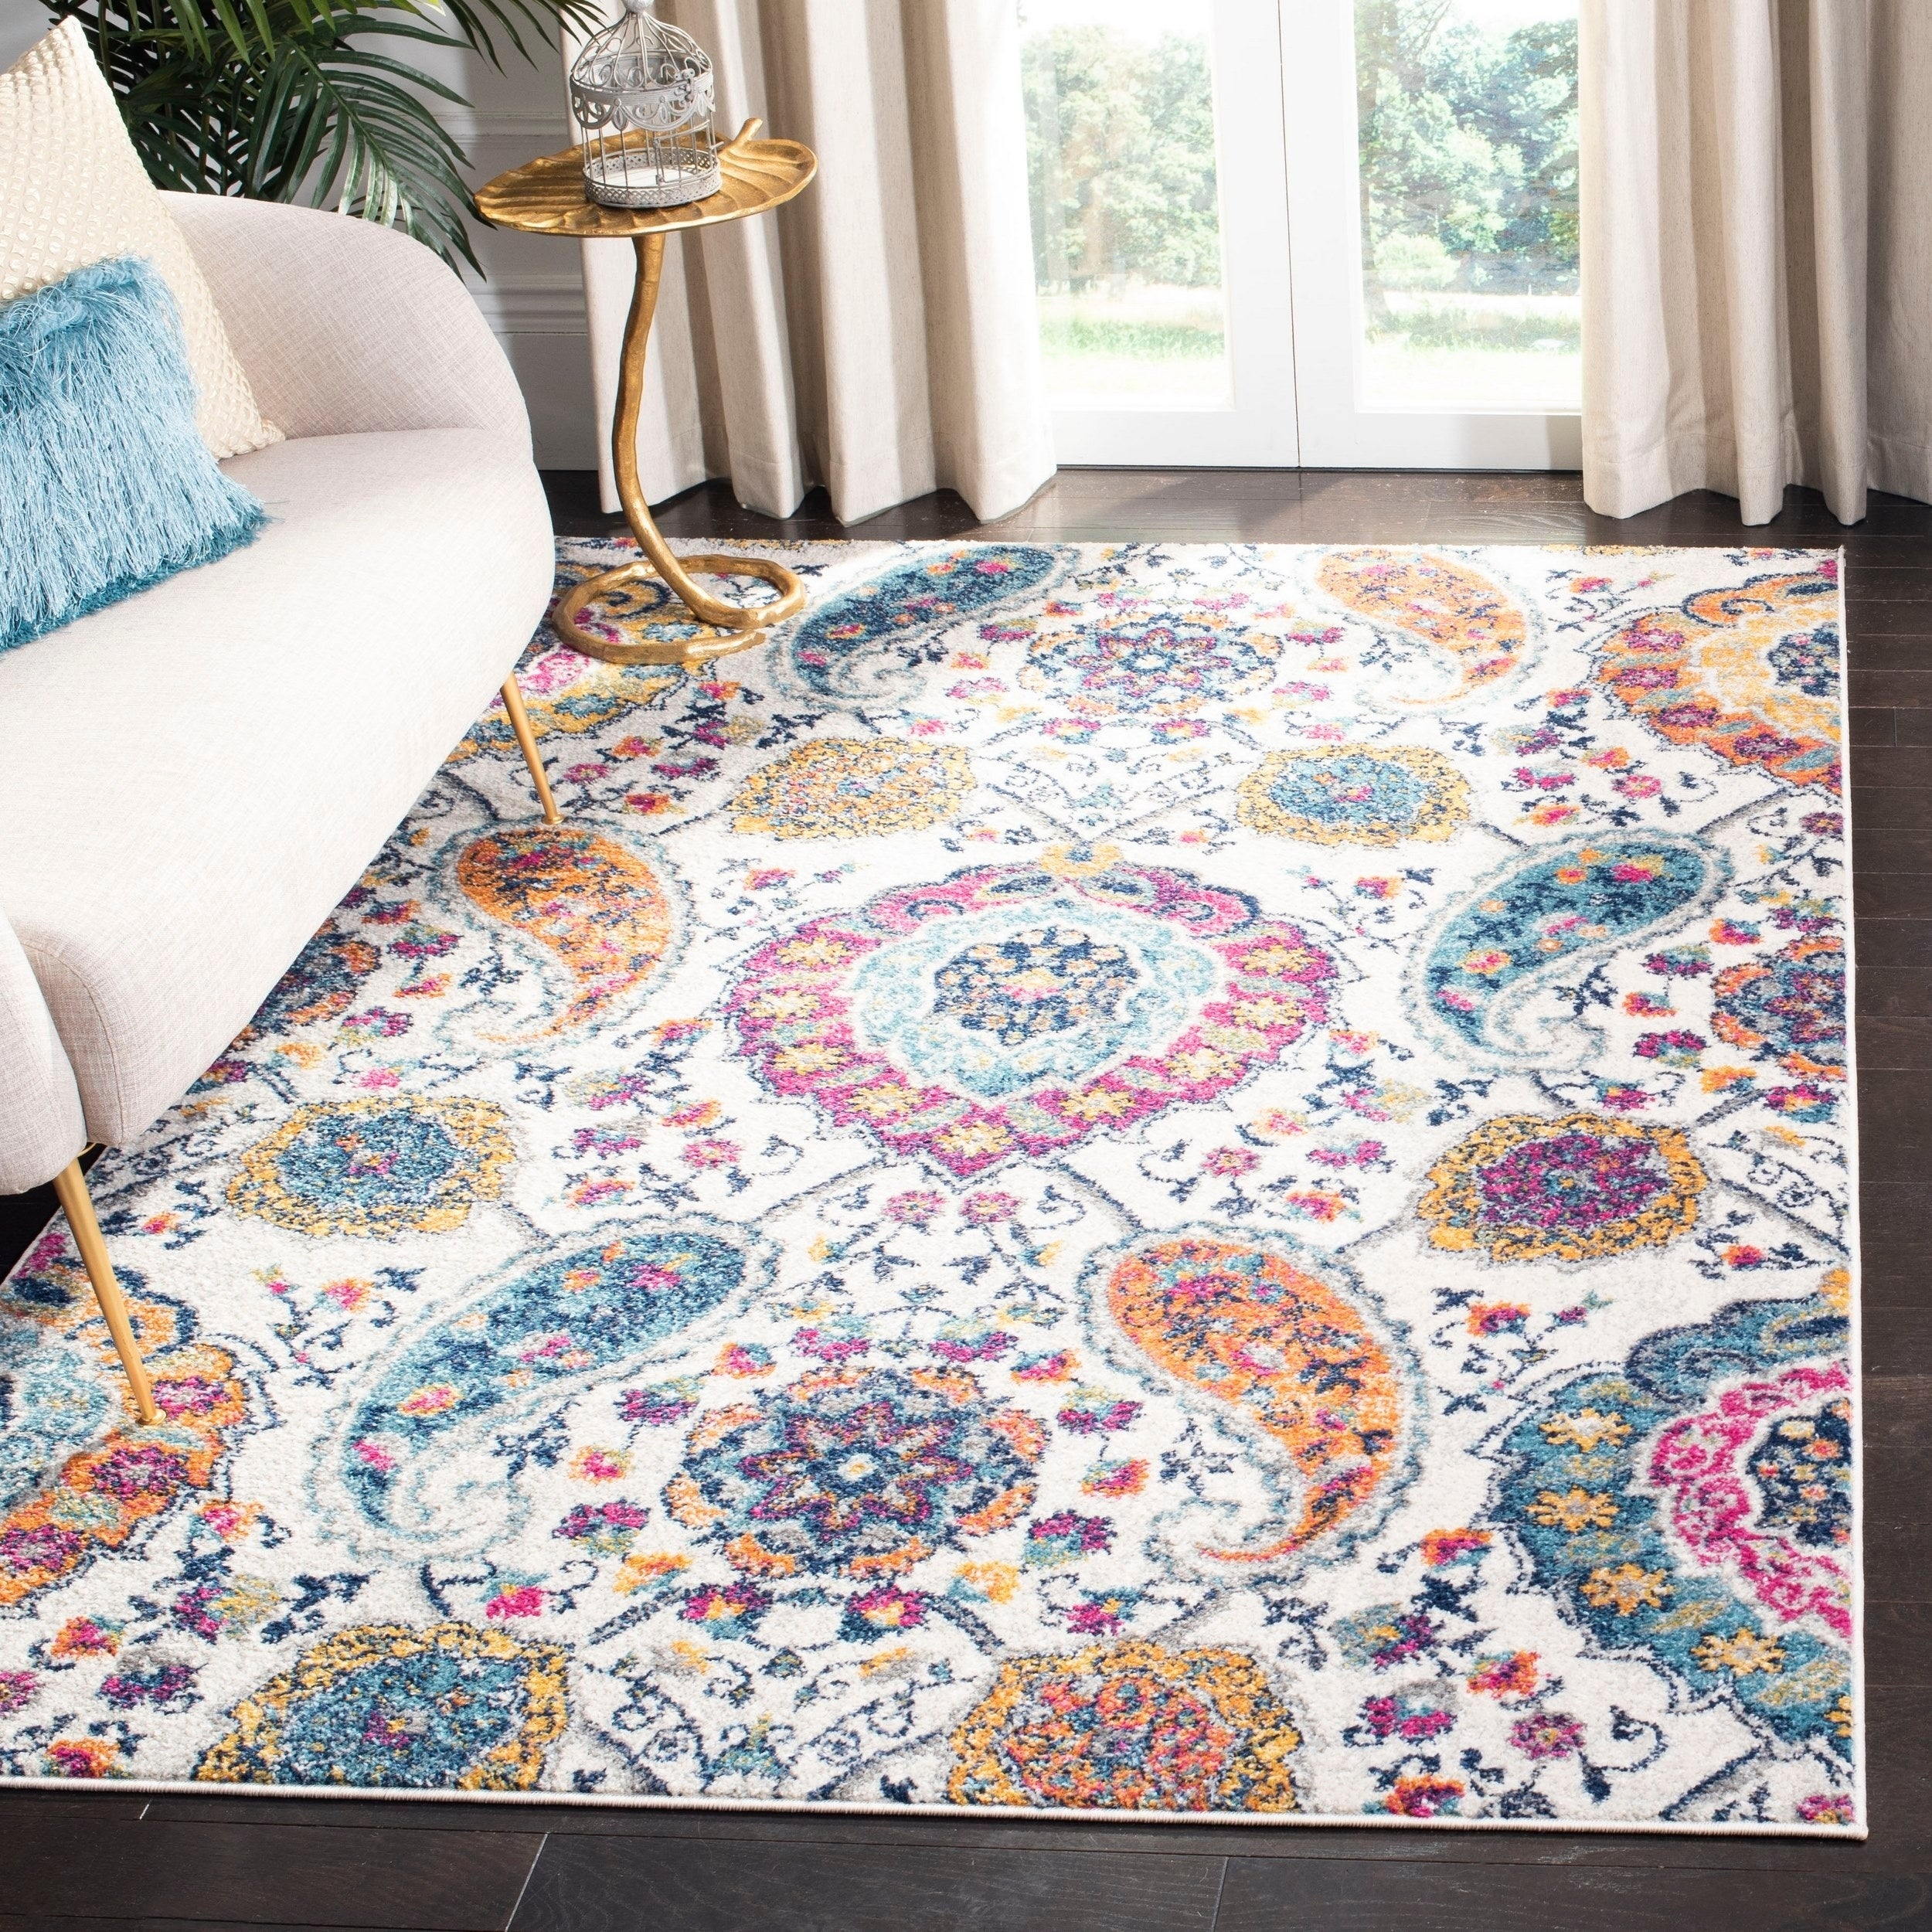 12c395ff412 Buy 8' x 10' Area Rugs Online at Overstock | Our Best Rugs Deals